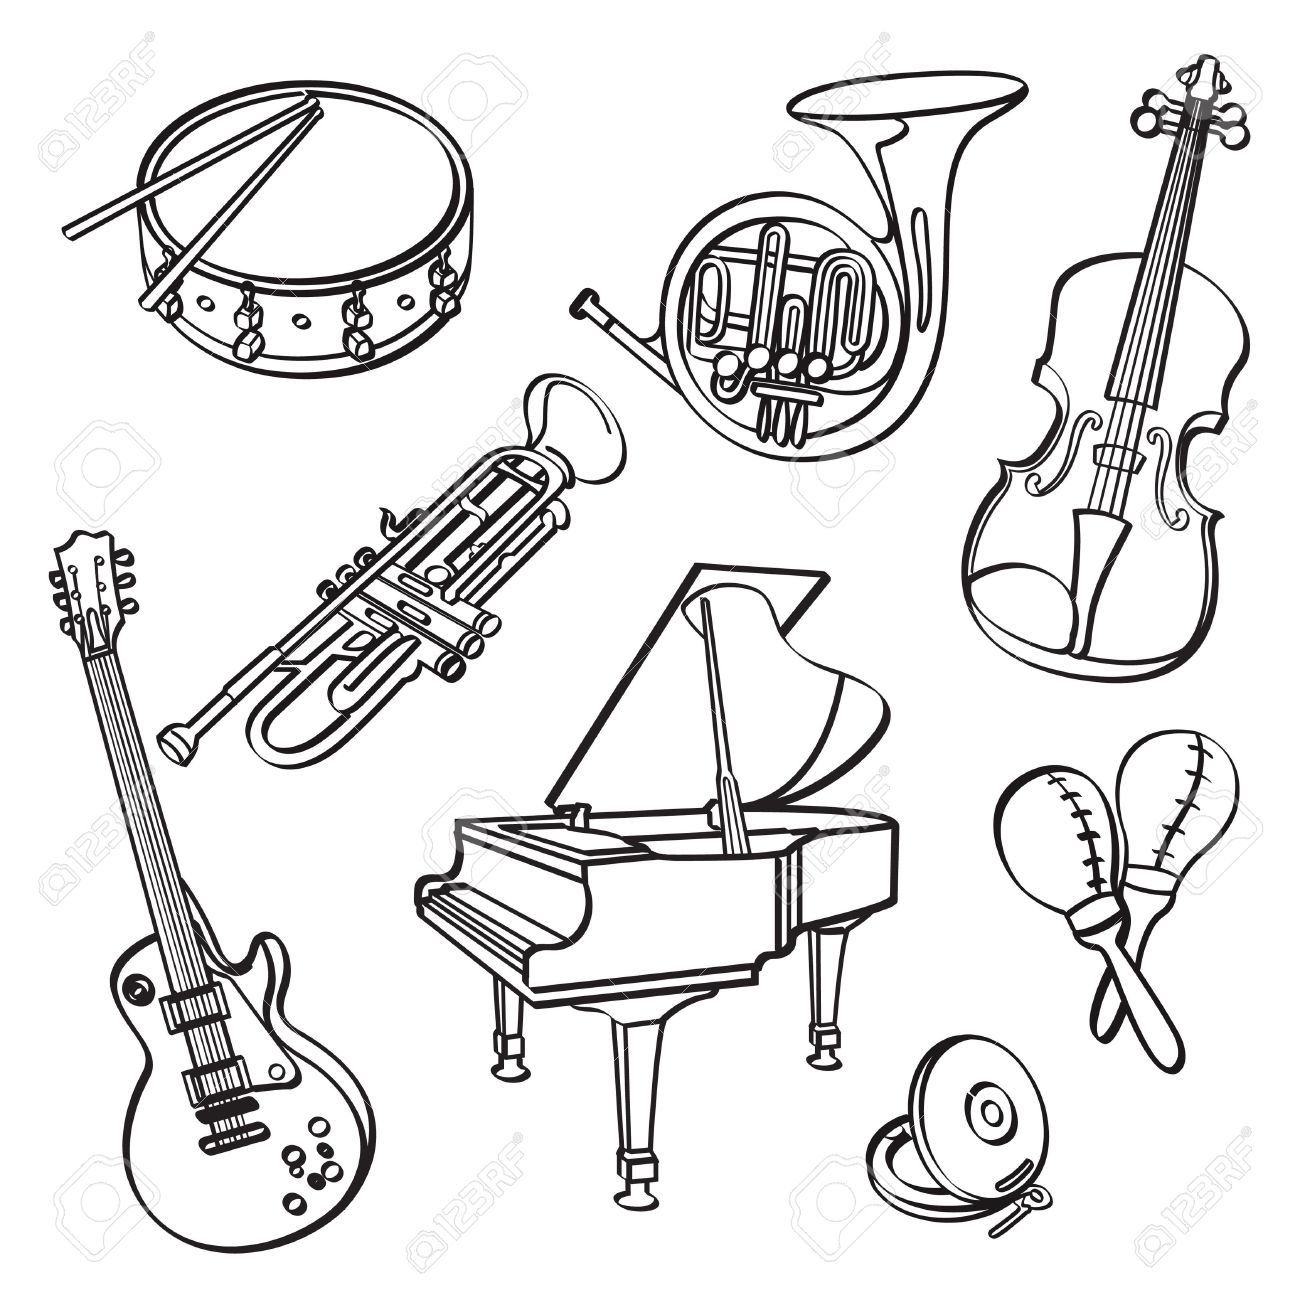 1300x1300 Musical Instruments Royalty Free Cliparts, Vectors, And Stock